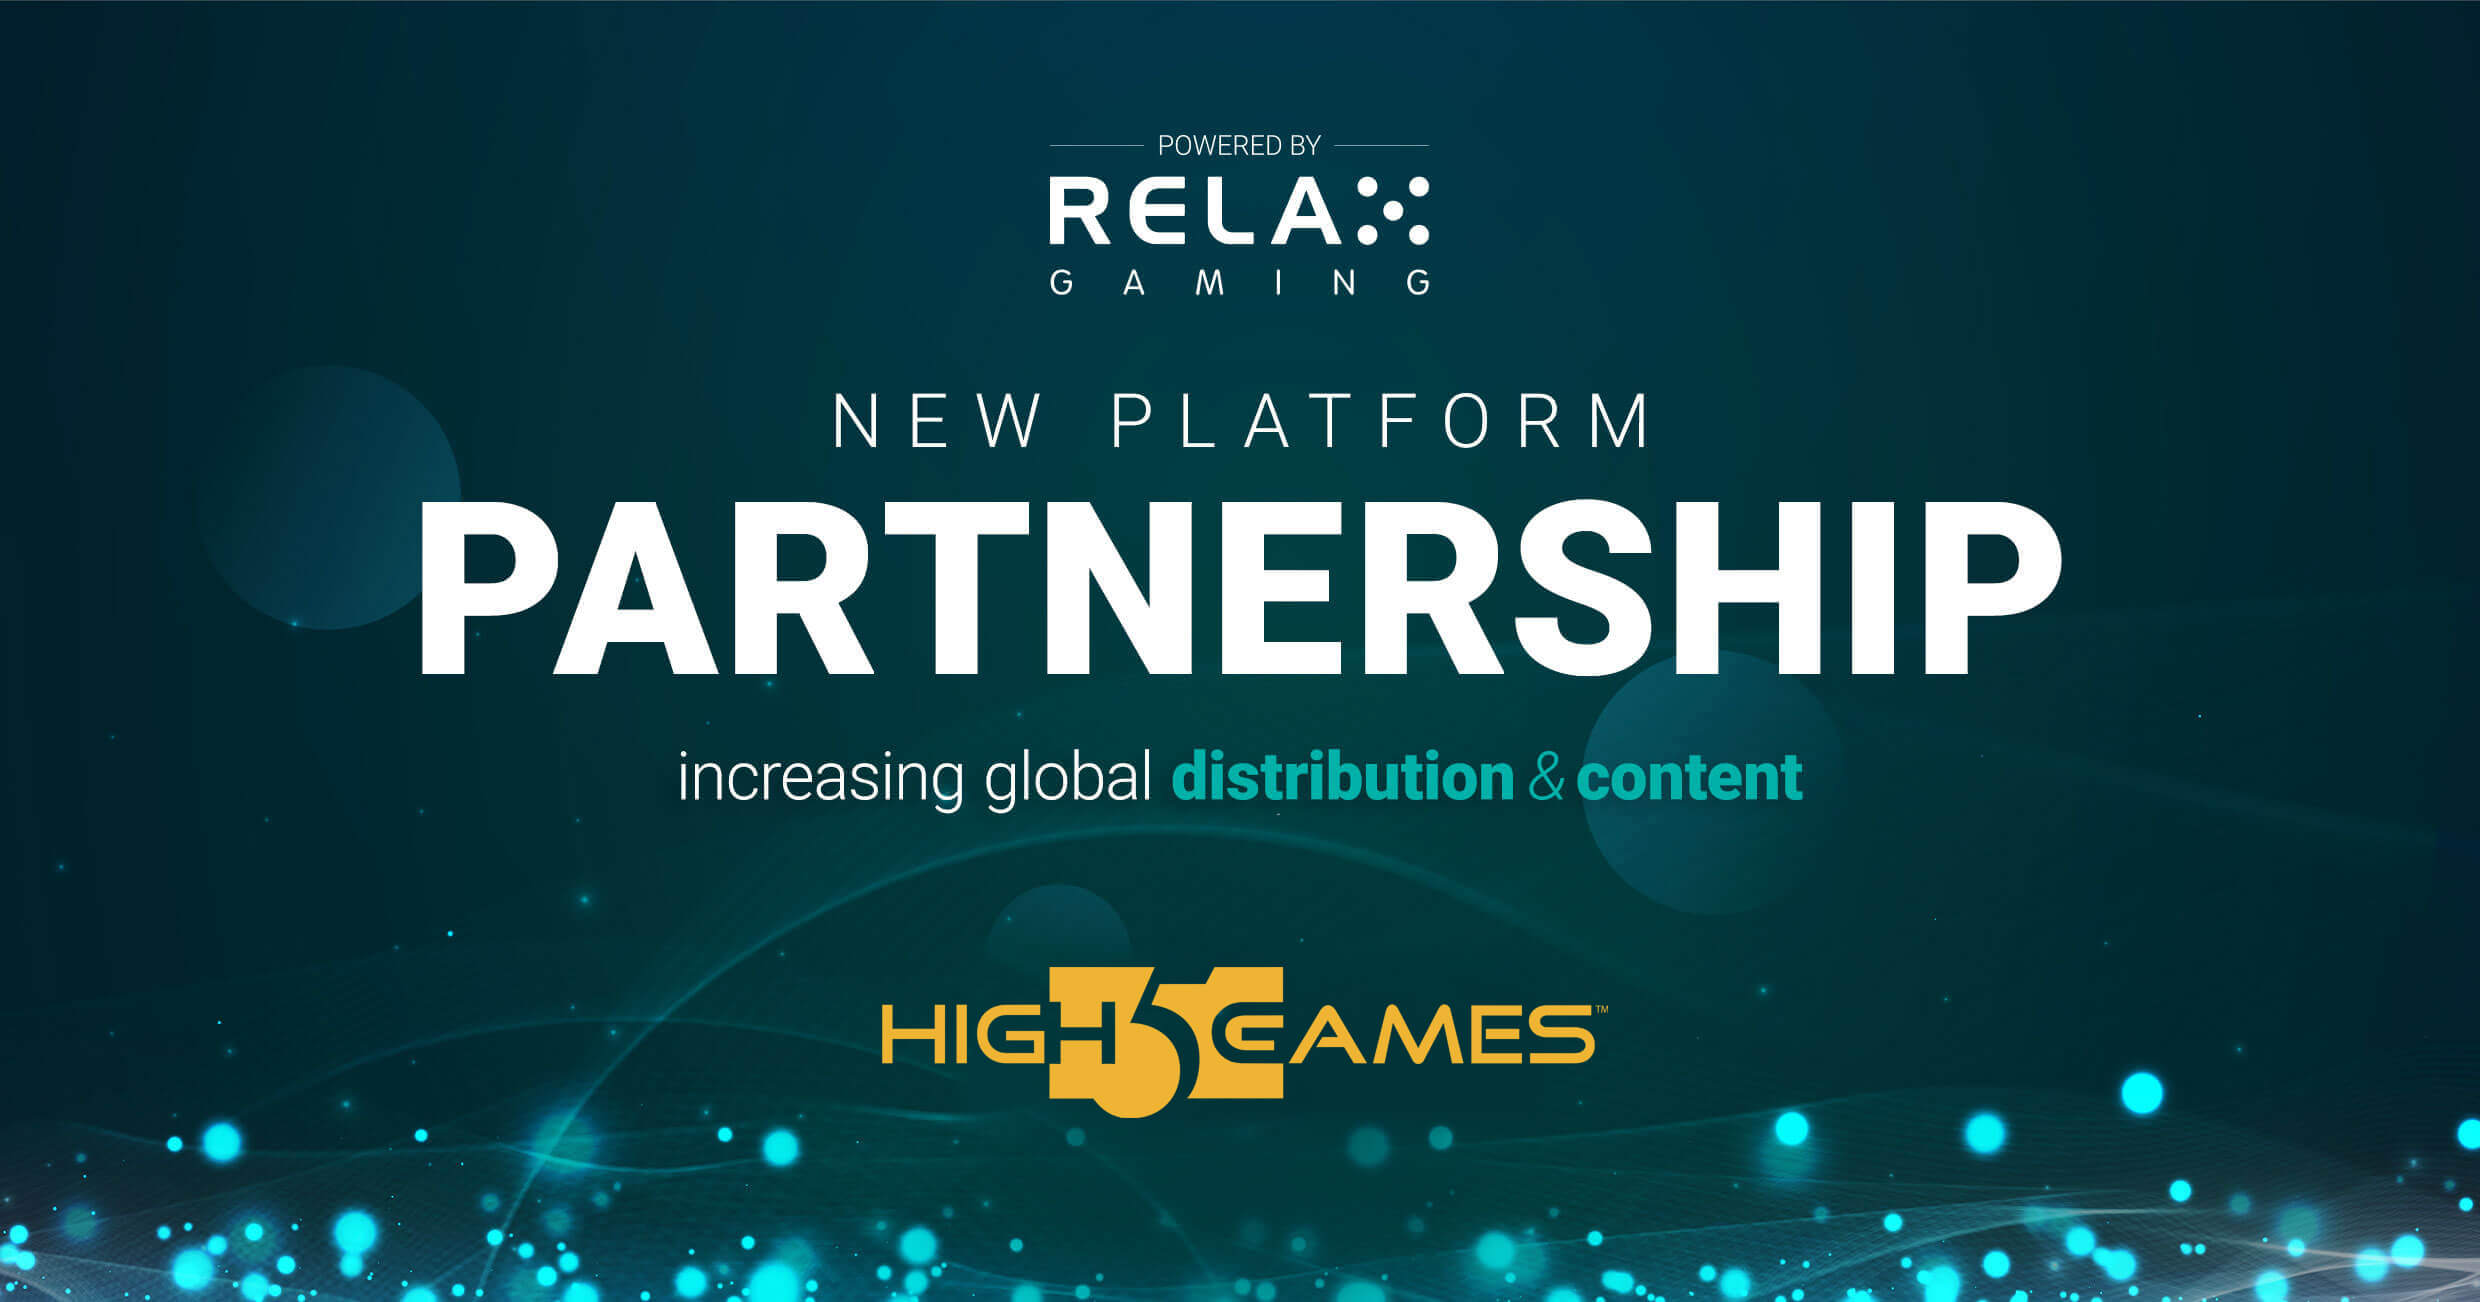 Relax Gaming signs High 5 Games partnership